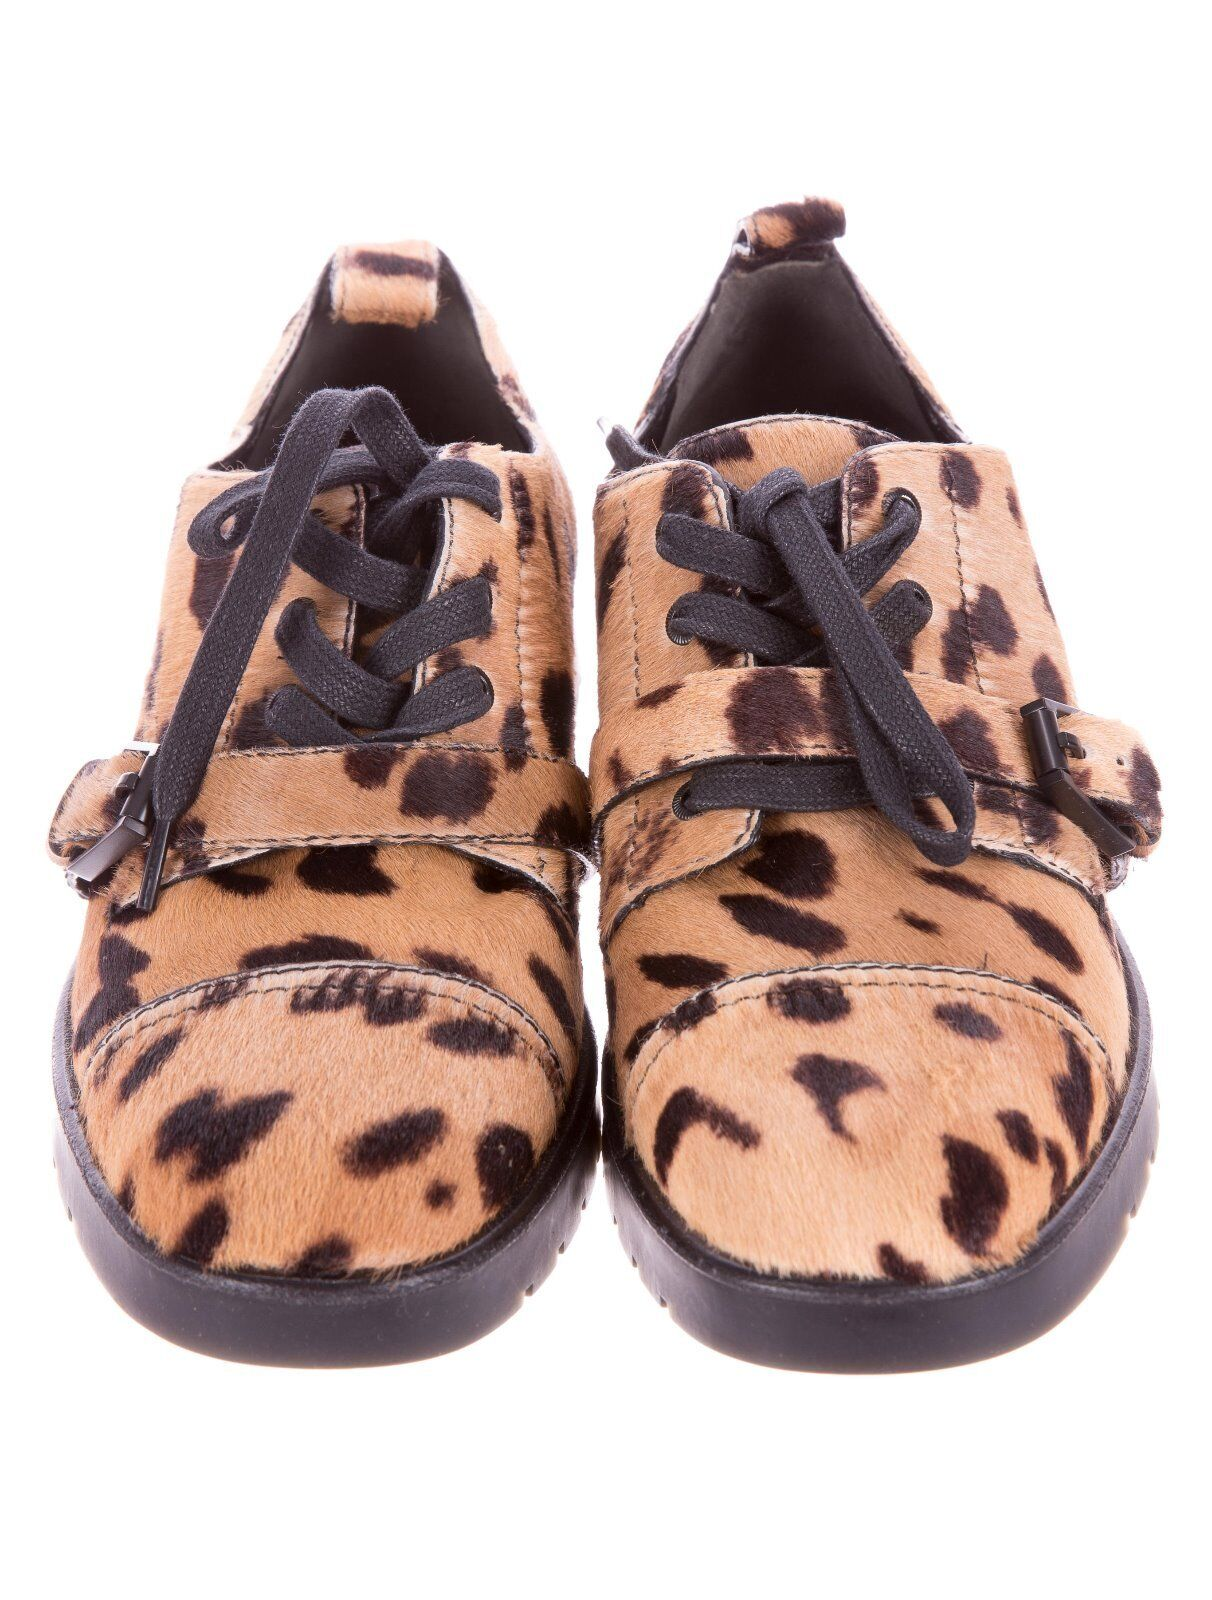 STUNNING NWB SOLD OUT  695 LEOPARD PATTERN CALF CALF CALF HAIR LOAFERS BY ALEXANDER WANG 6a087f